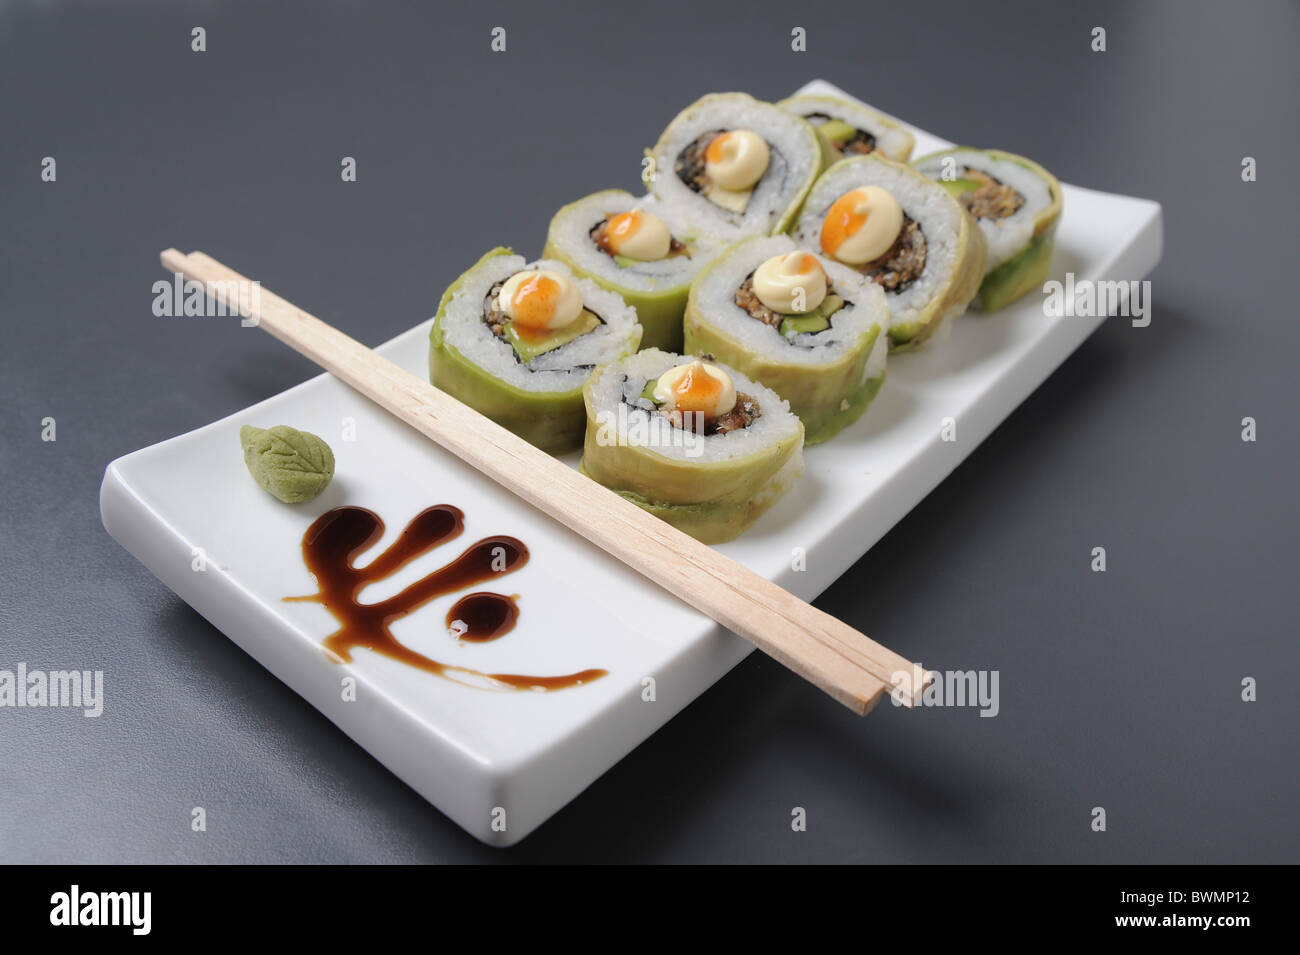 Sushi on a platter with chopsticks  - Stock Image